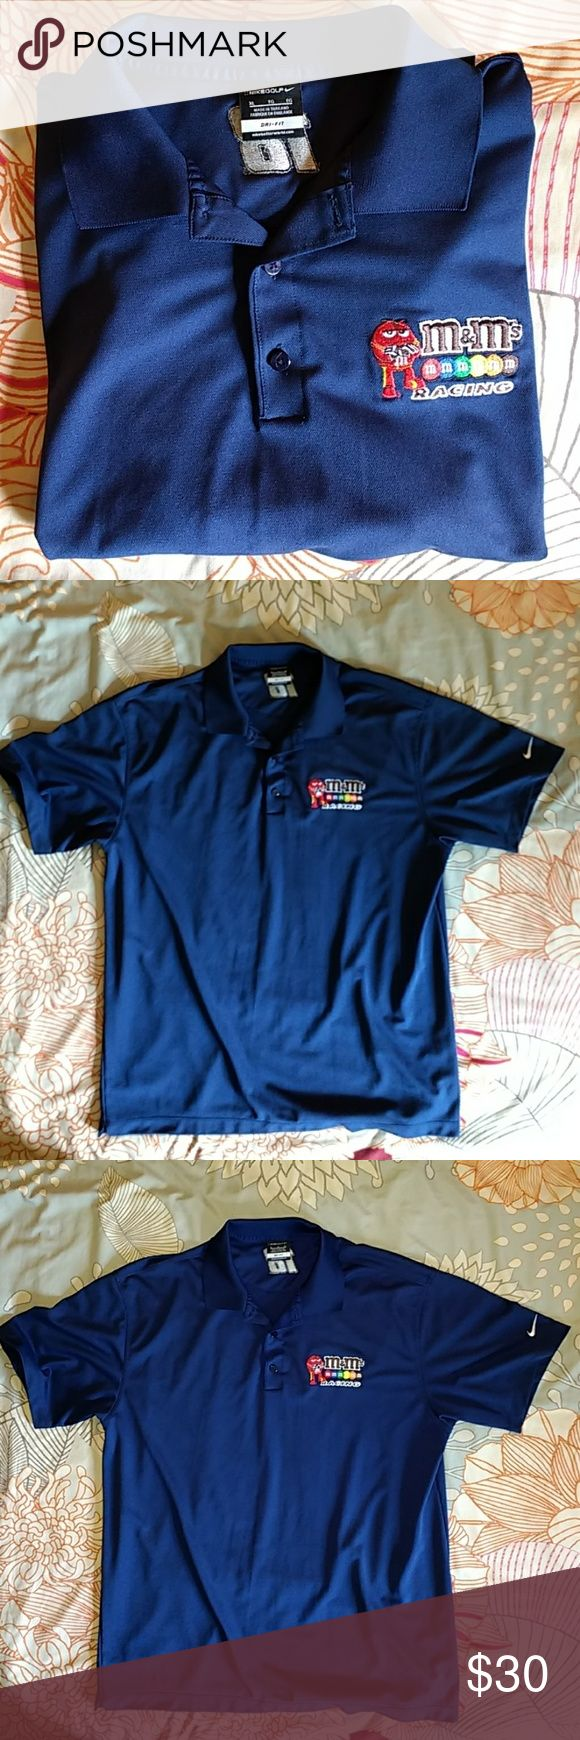 Nike Dri-fit M&M's Racing Kyle Busch polo shirt Nike Dri-fit M&M's Racing Kyle Busch polo shirt  Dark blue, size XL  Garment is in good condition. Feel free to ask questions! Nike Shirts Polos